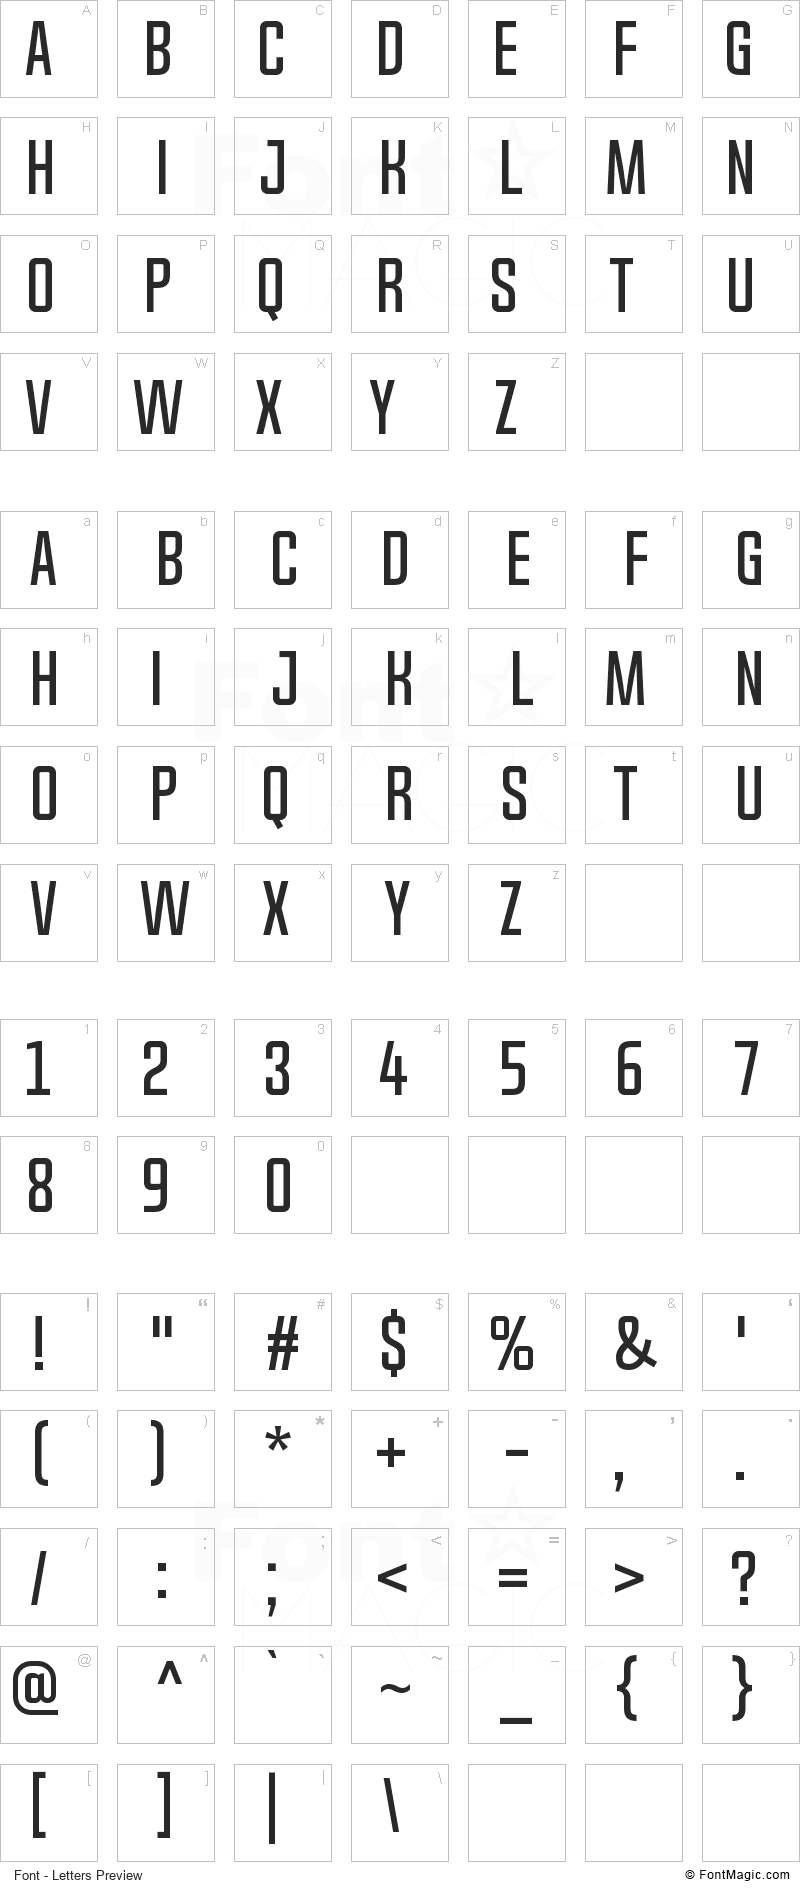 Chosence Font - All Latters Preview Chart